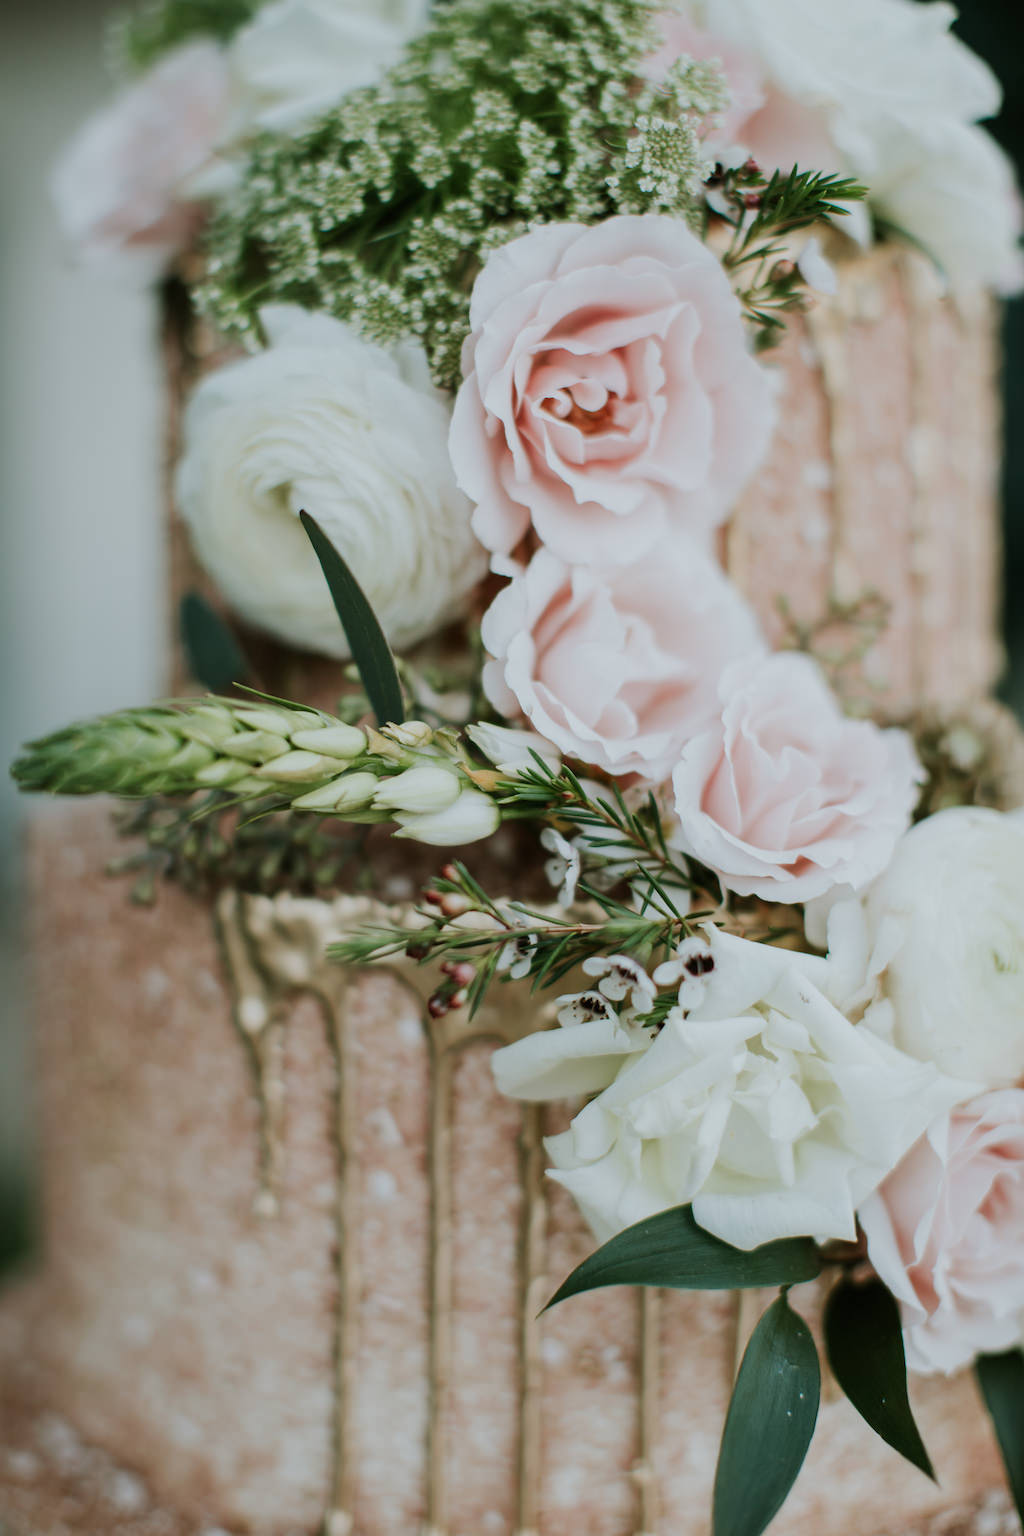 Whimsical Blush Pink with Gold Drip Wedding Cake and Cascading Blush Pink and White Roses with Greenery Accents Wedding Cake | St. Pete Wedding Cake Bakery The Artistic Whisk